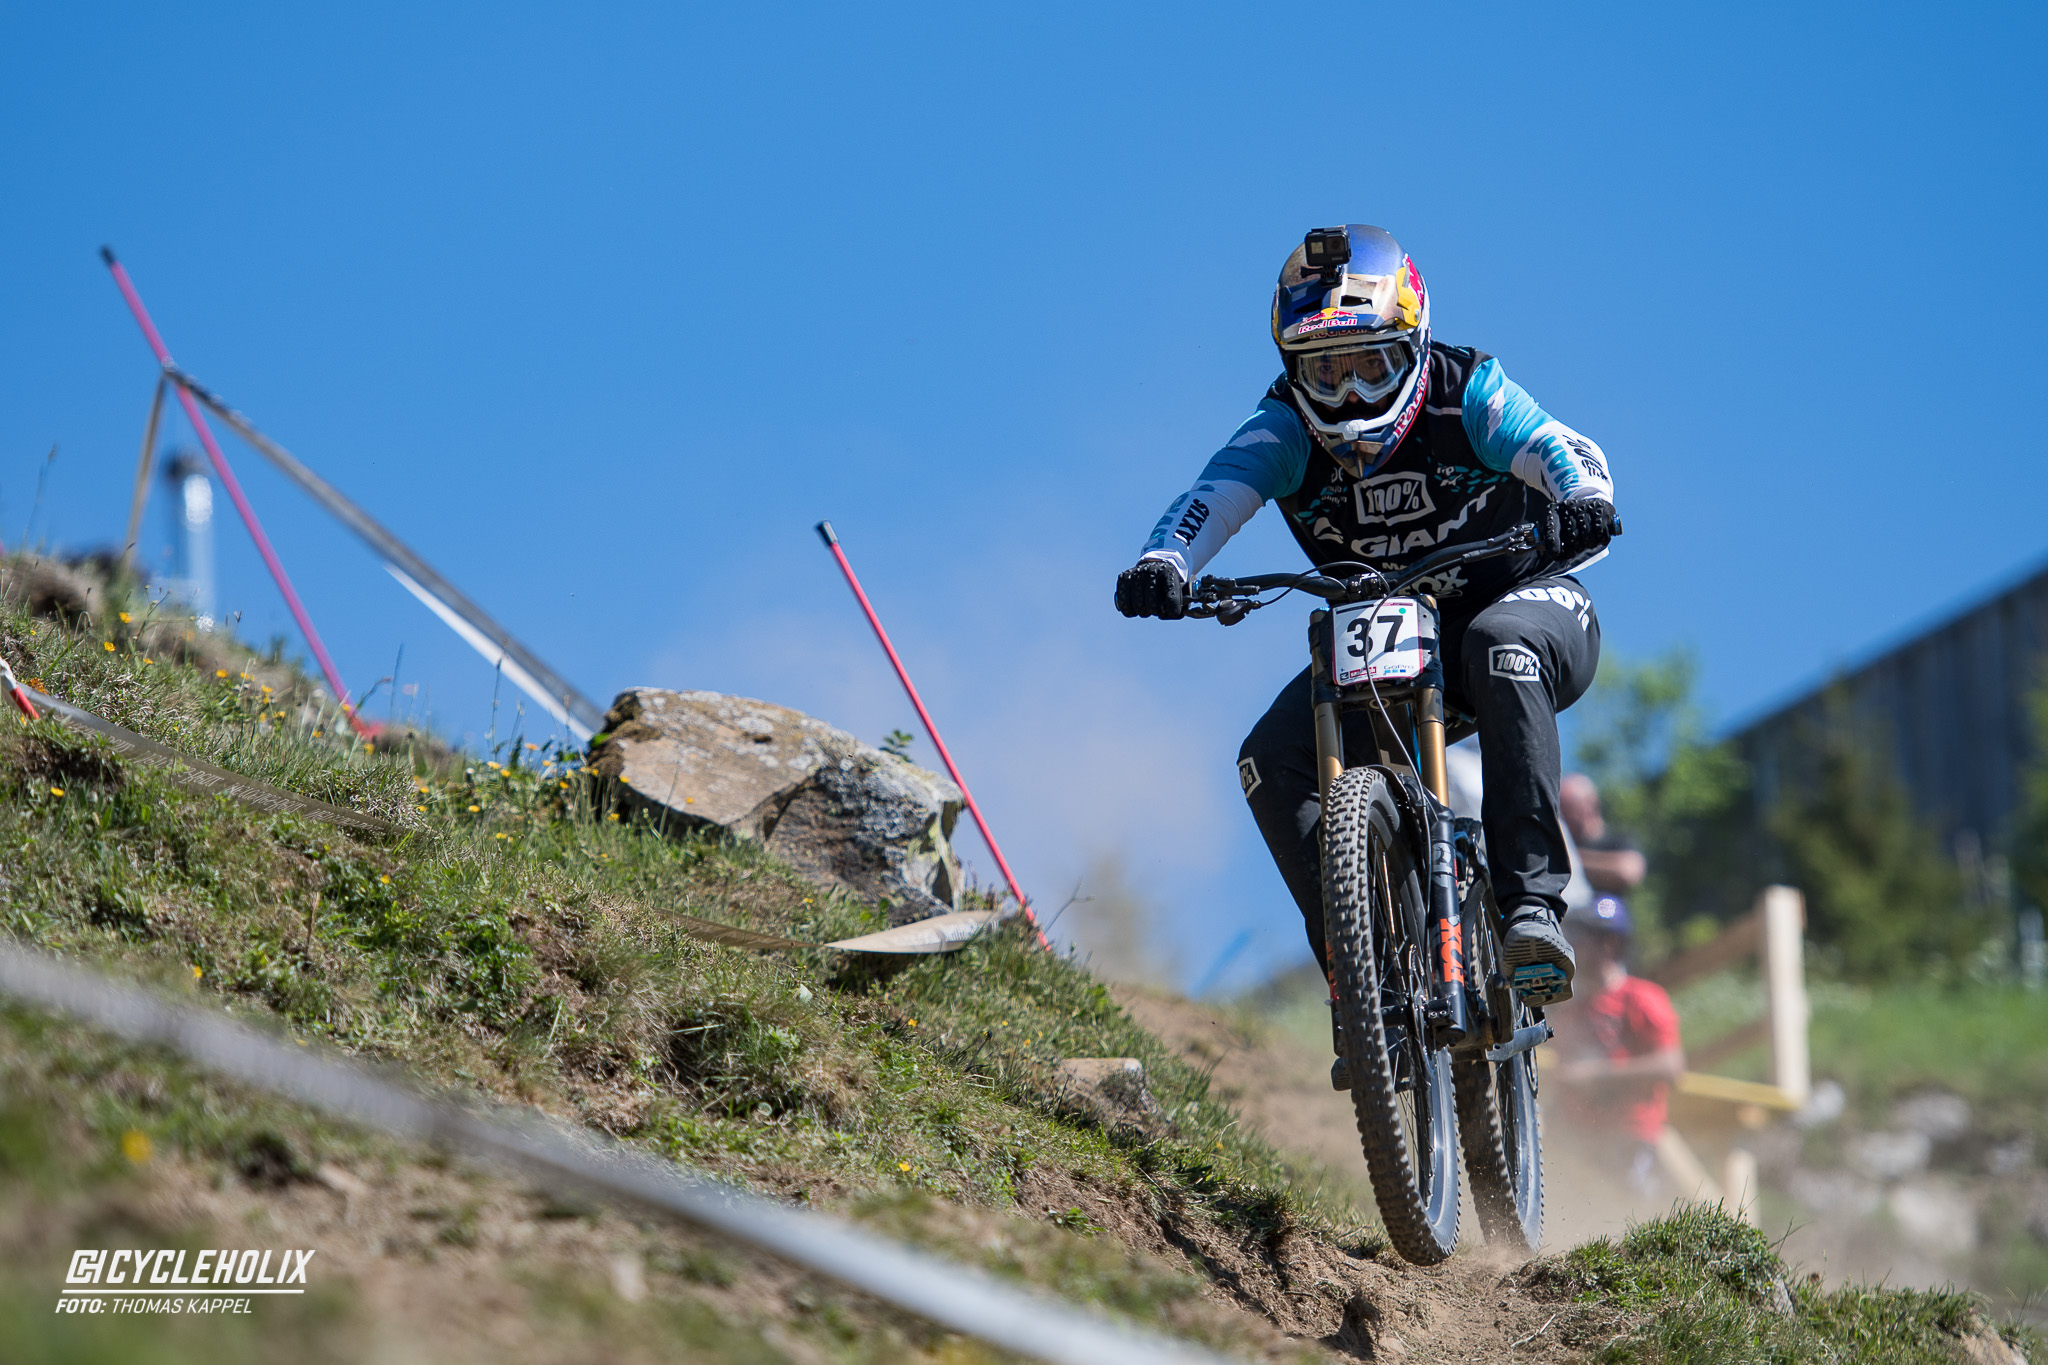 2019 Downhill Worldcup Leogang Finale Action B 2